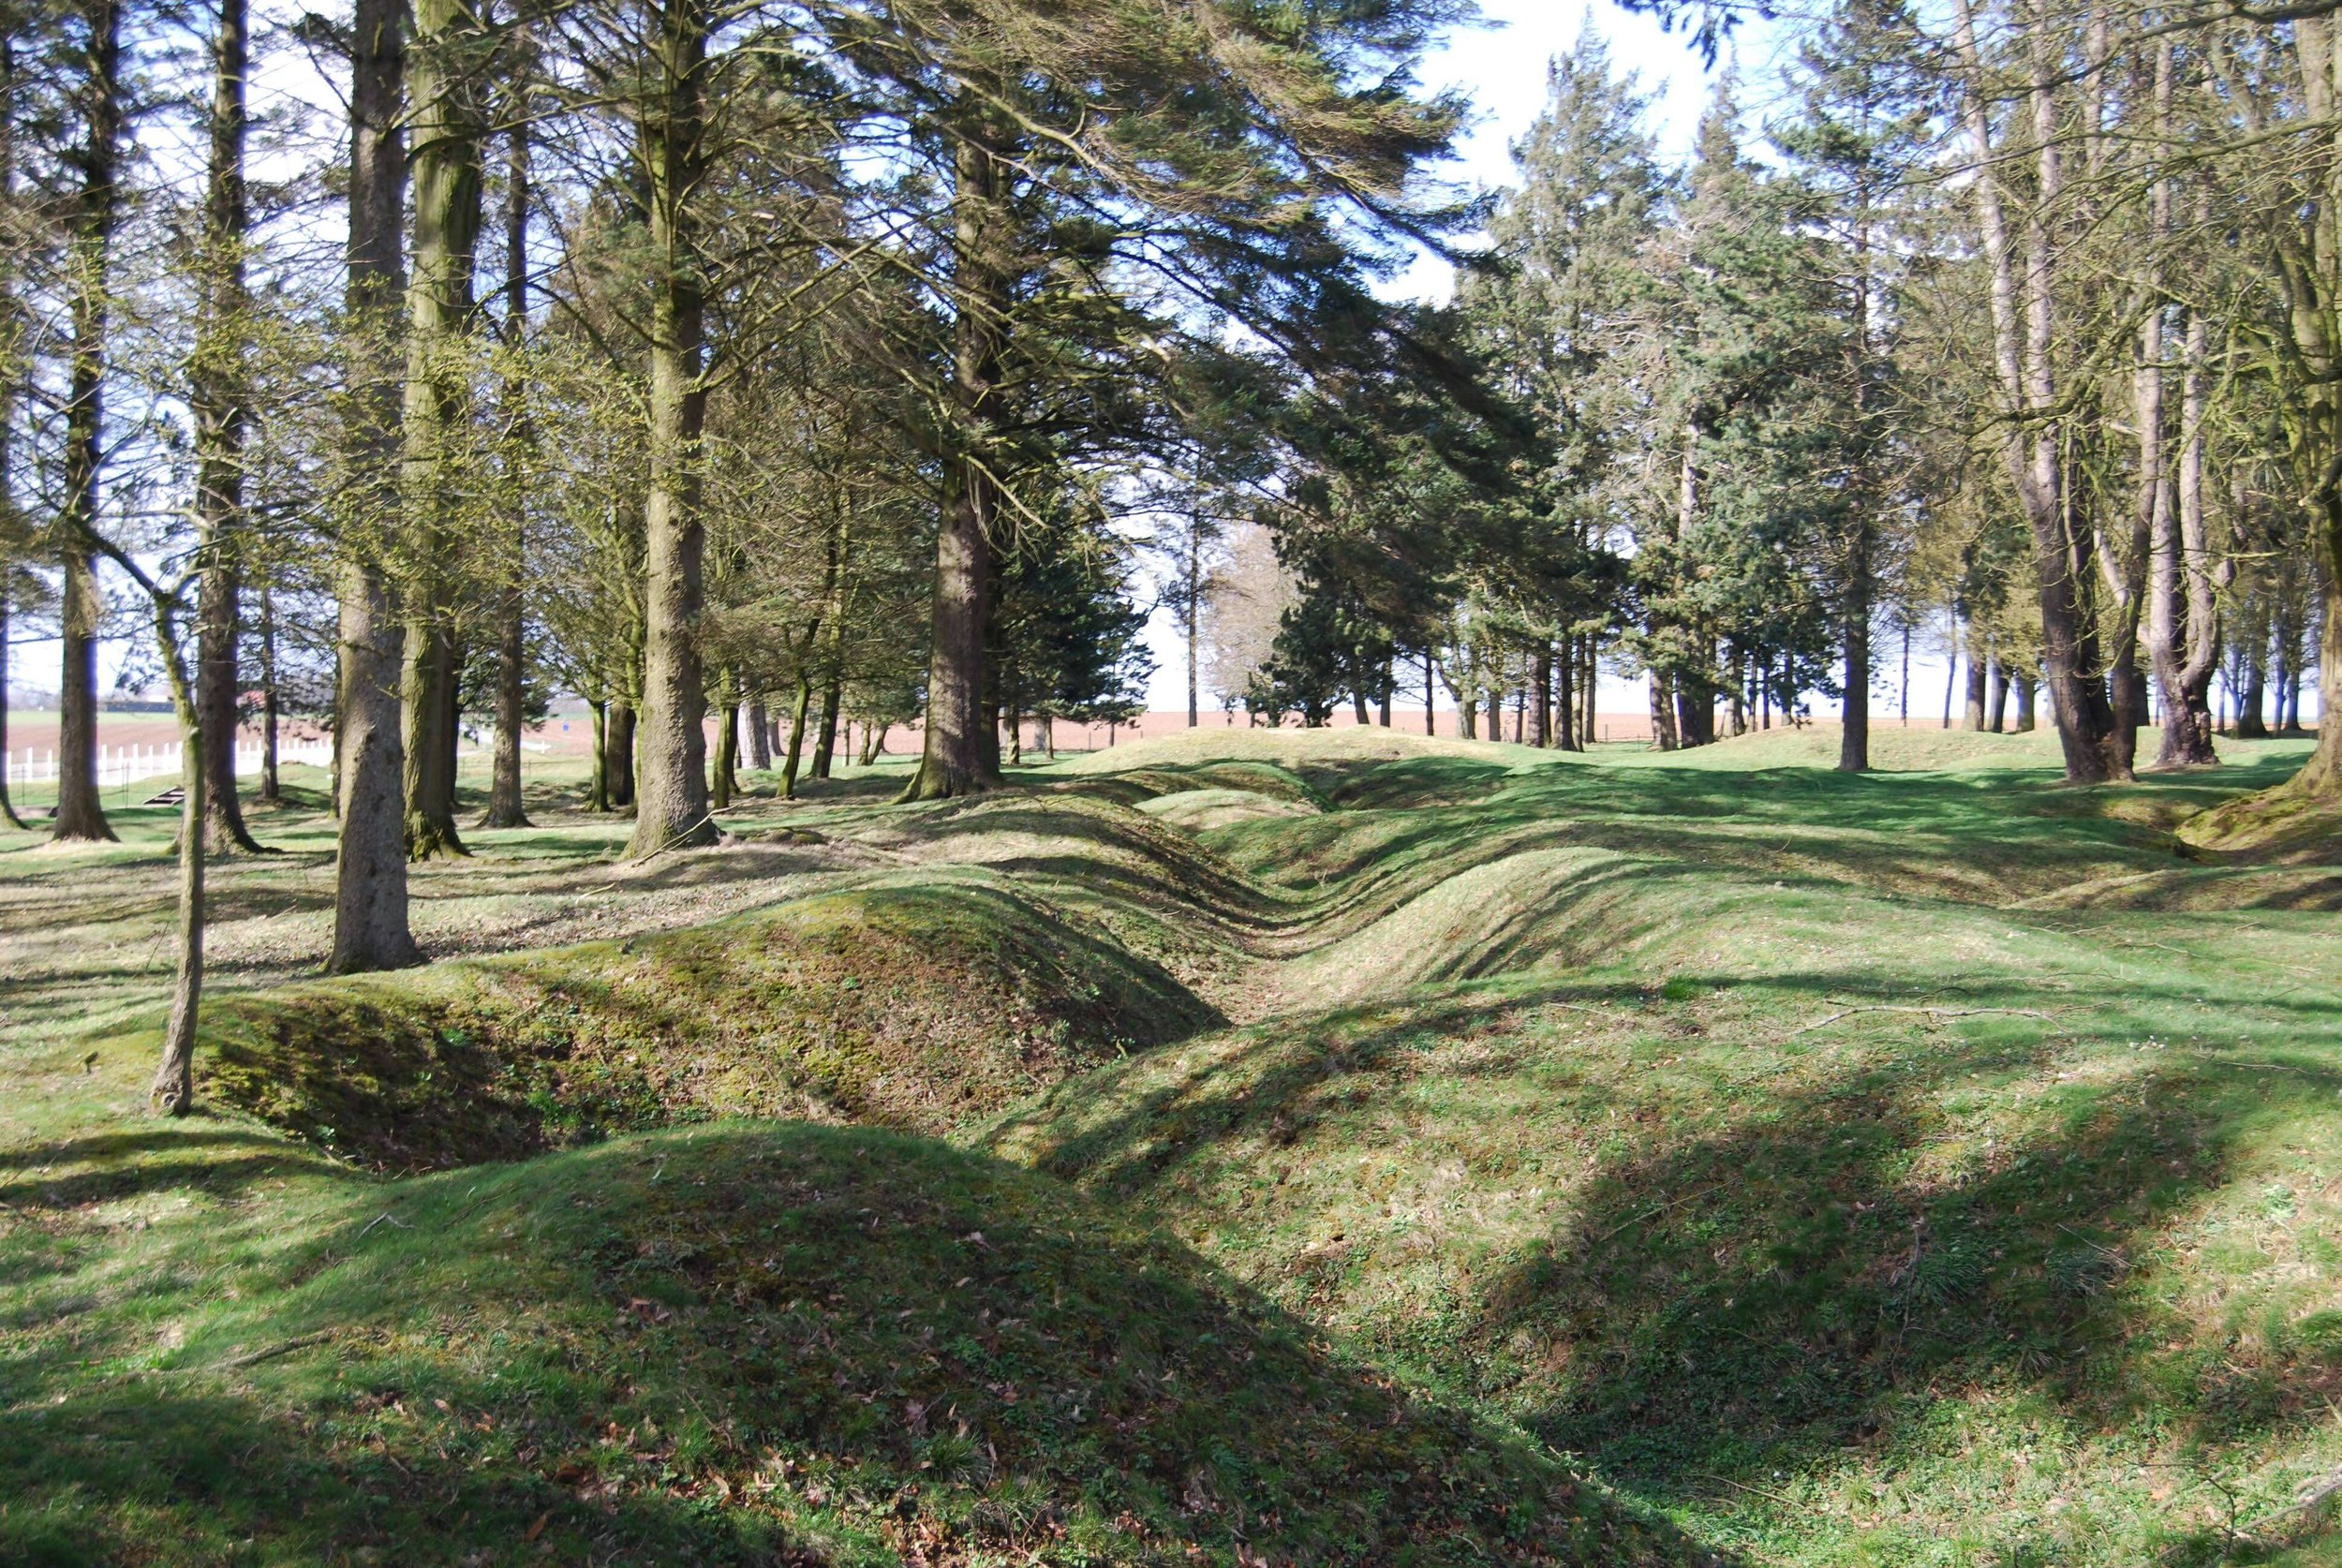 You can see the remnants of the trench system at the Newfoundland Memorial. It is one of the only places in the area with the original trenches as most of the fields were returned to agricultural use after the war.